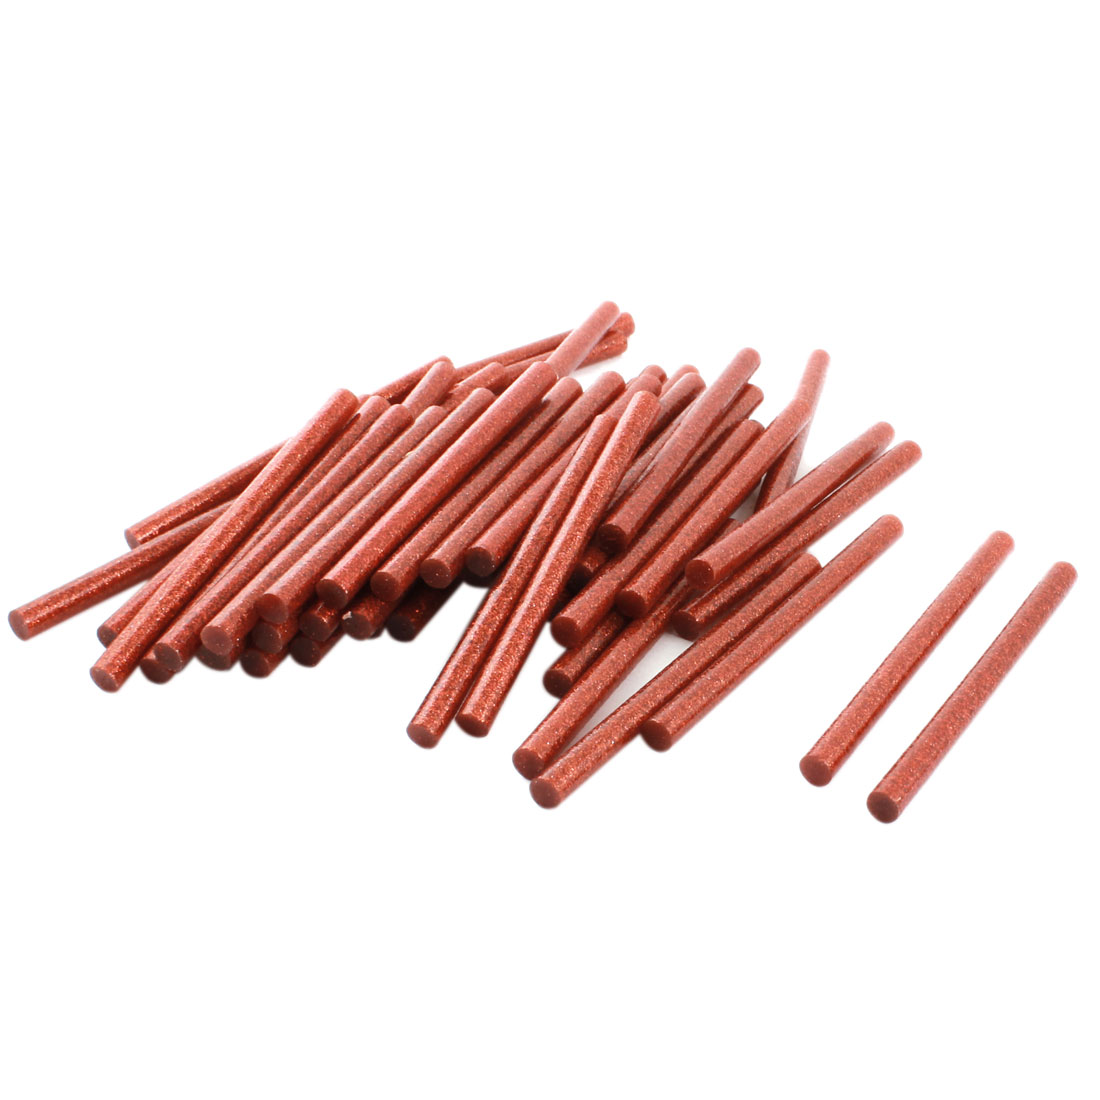 50Pcs 7mm Dia Red Glitter Glue Stick Adhesive 100mm Length for Electric Heating Hot Melt Gun